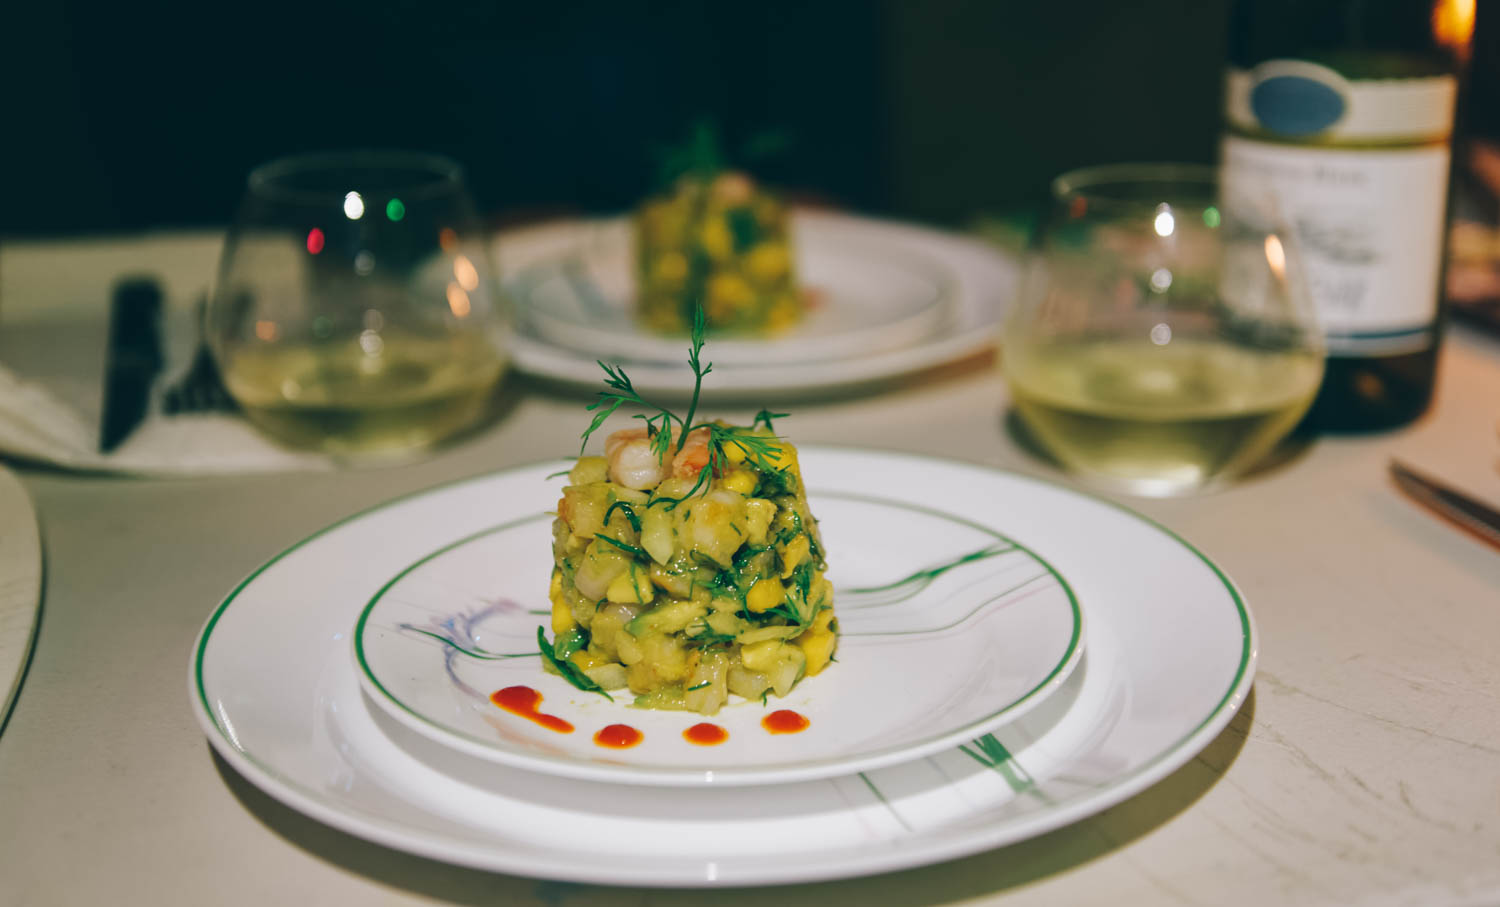 Aïsha prepared us a mango-avocado-shrimp tartare that could not have been better at an high end restaurant.